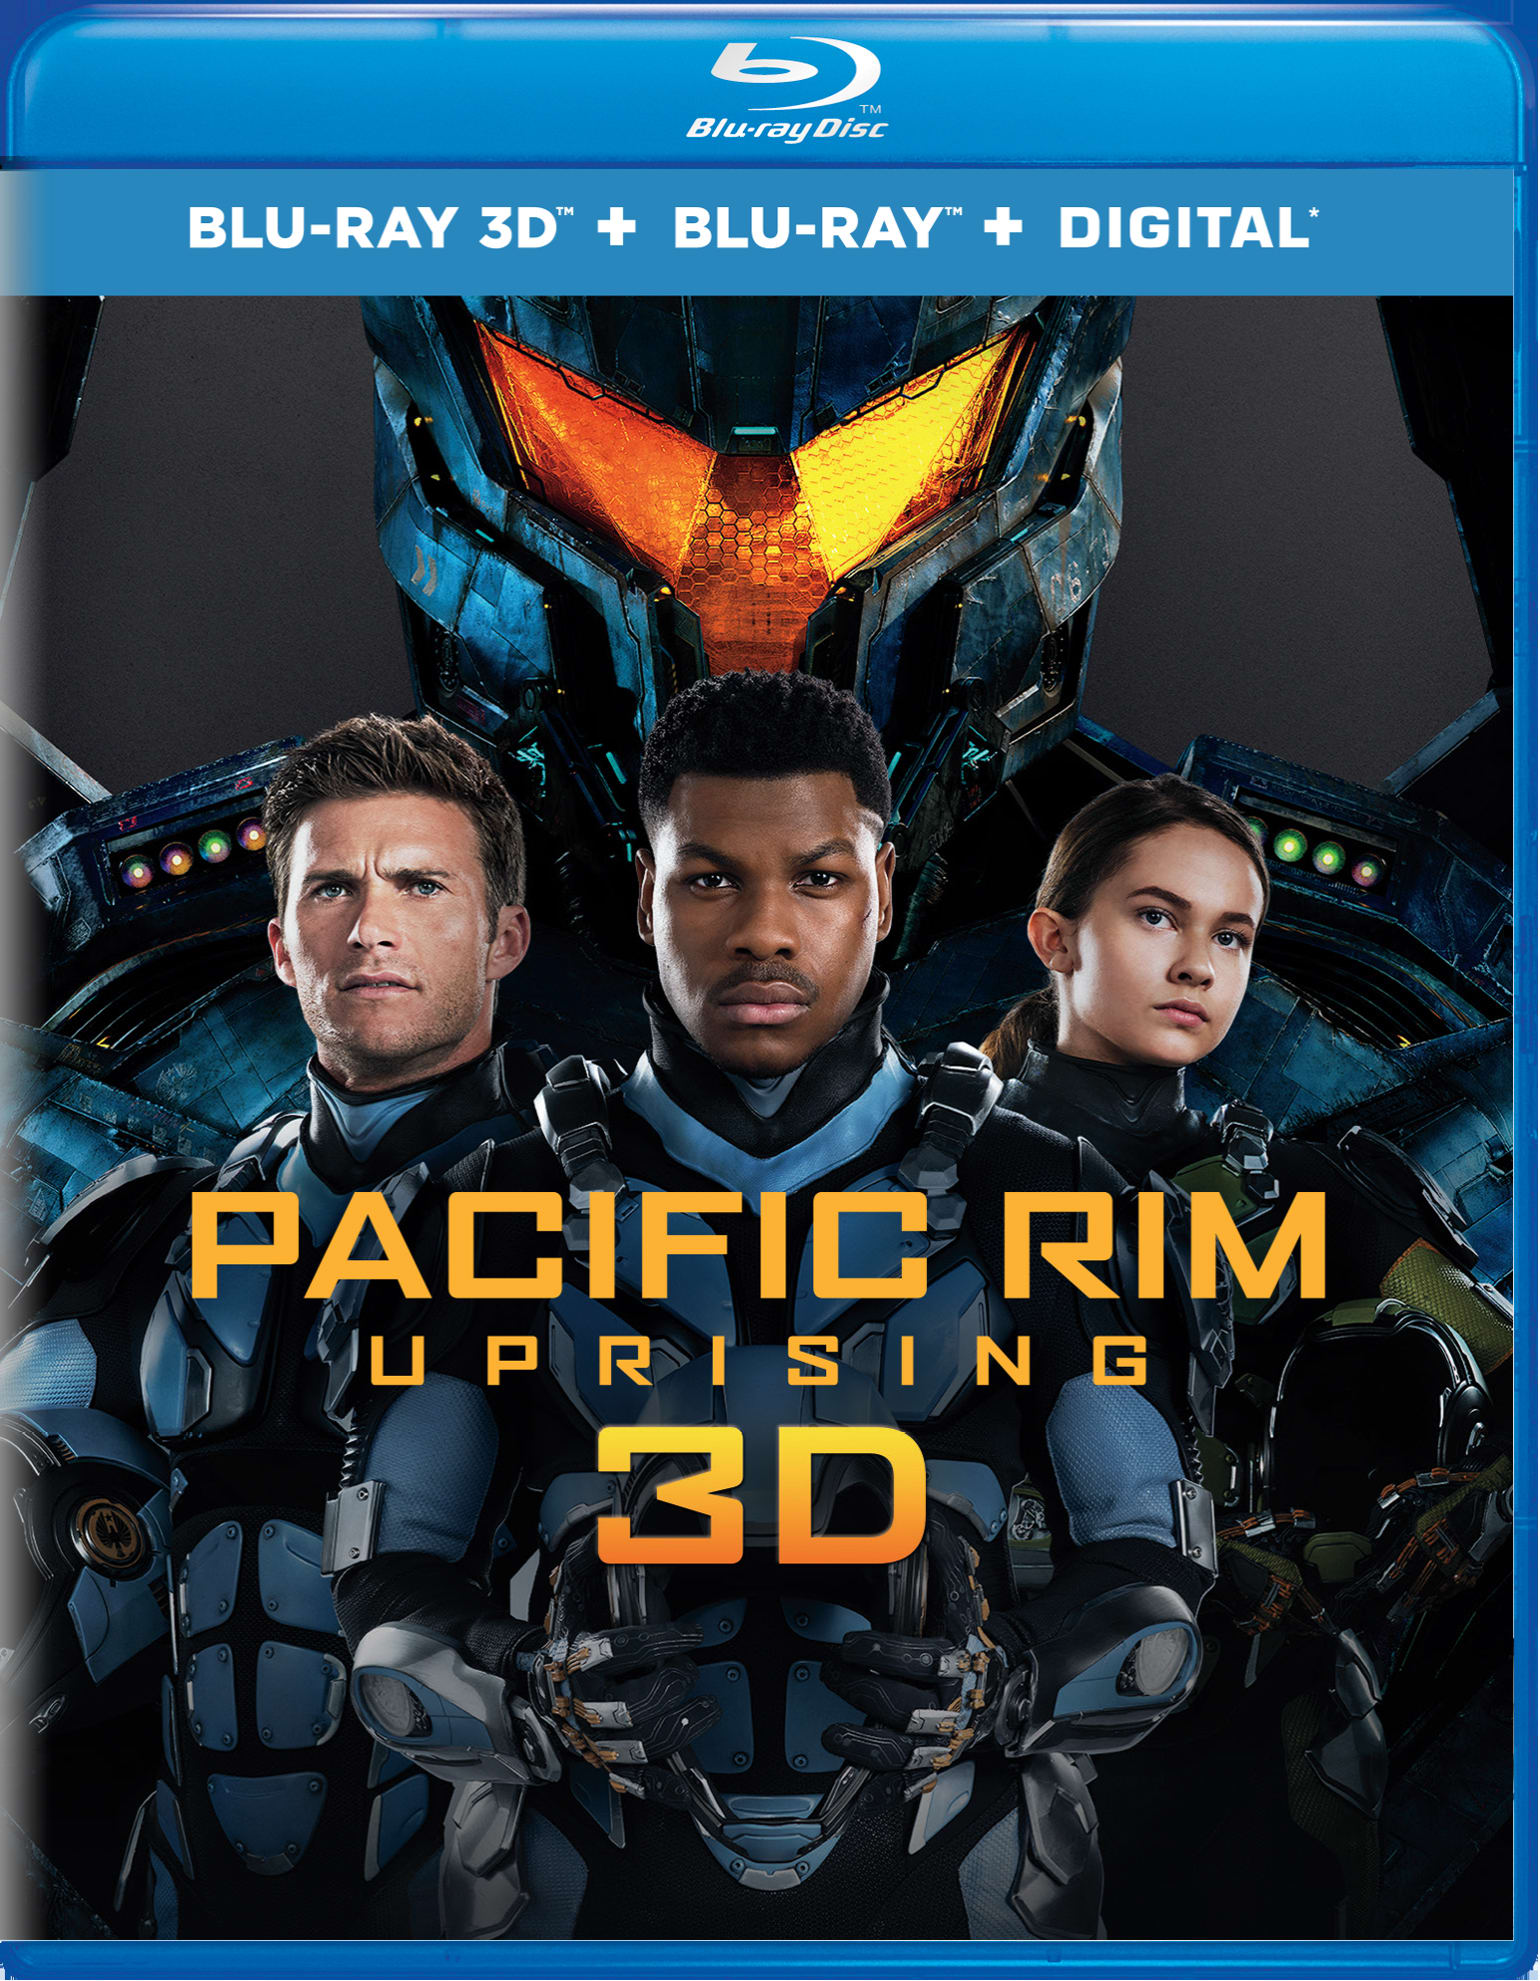 Pacific Rim - Uprising 3D (Digital) [Blu-ray]